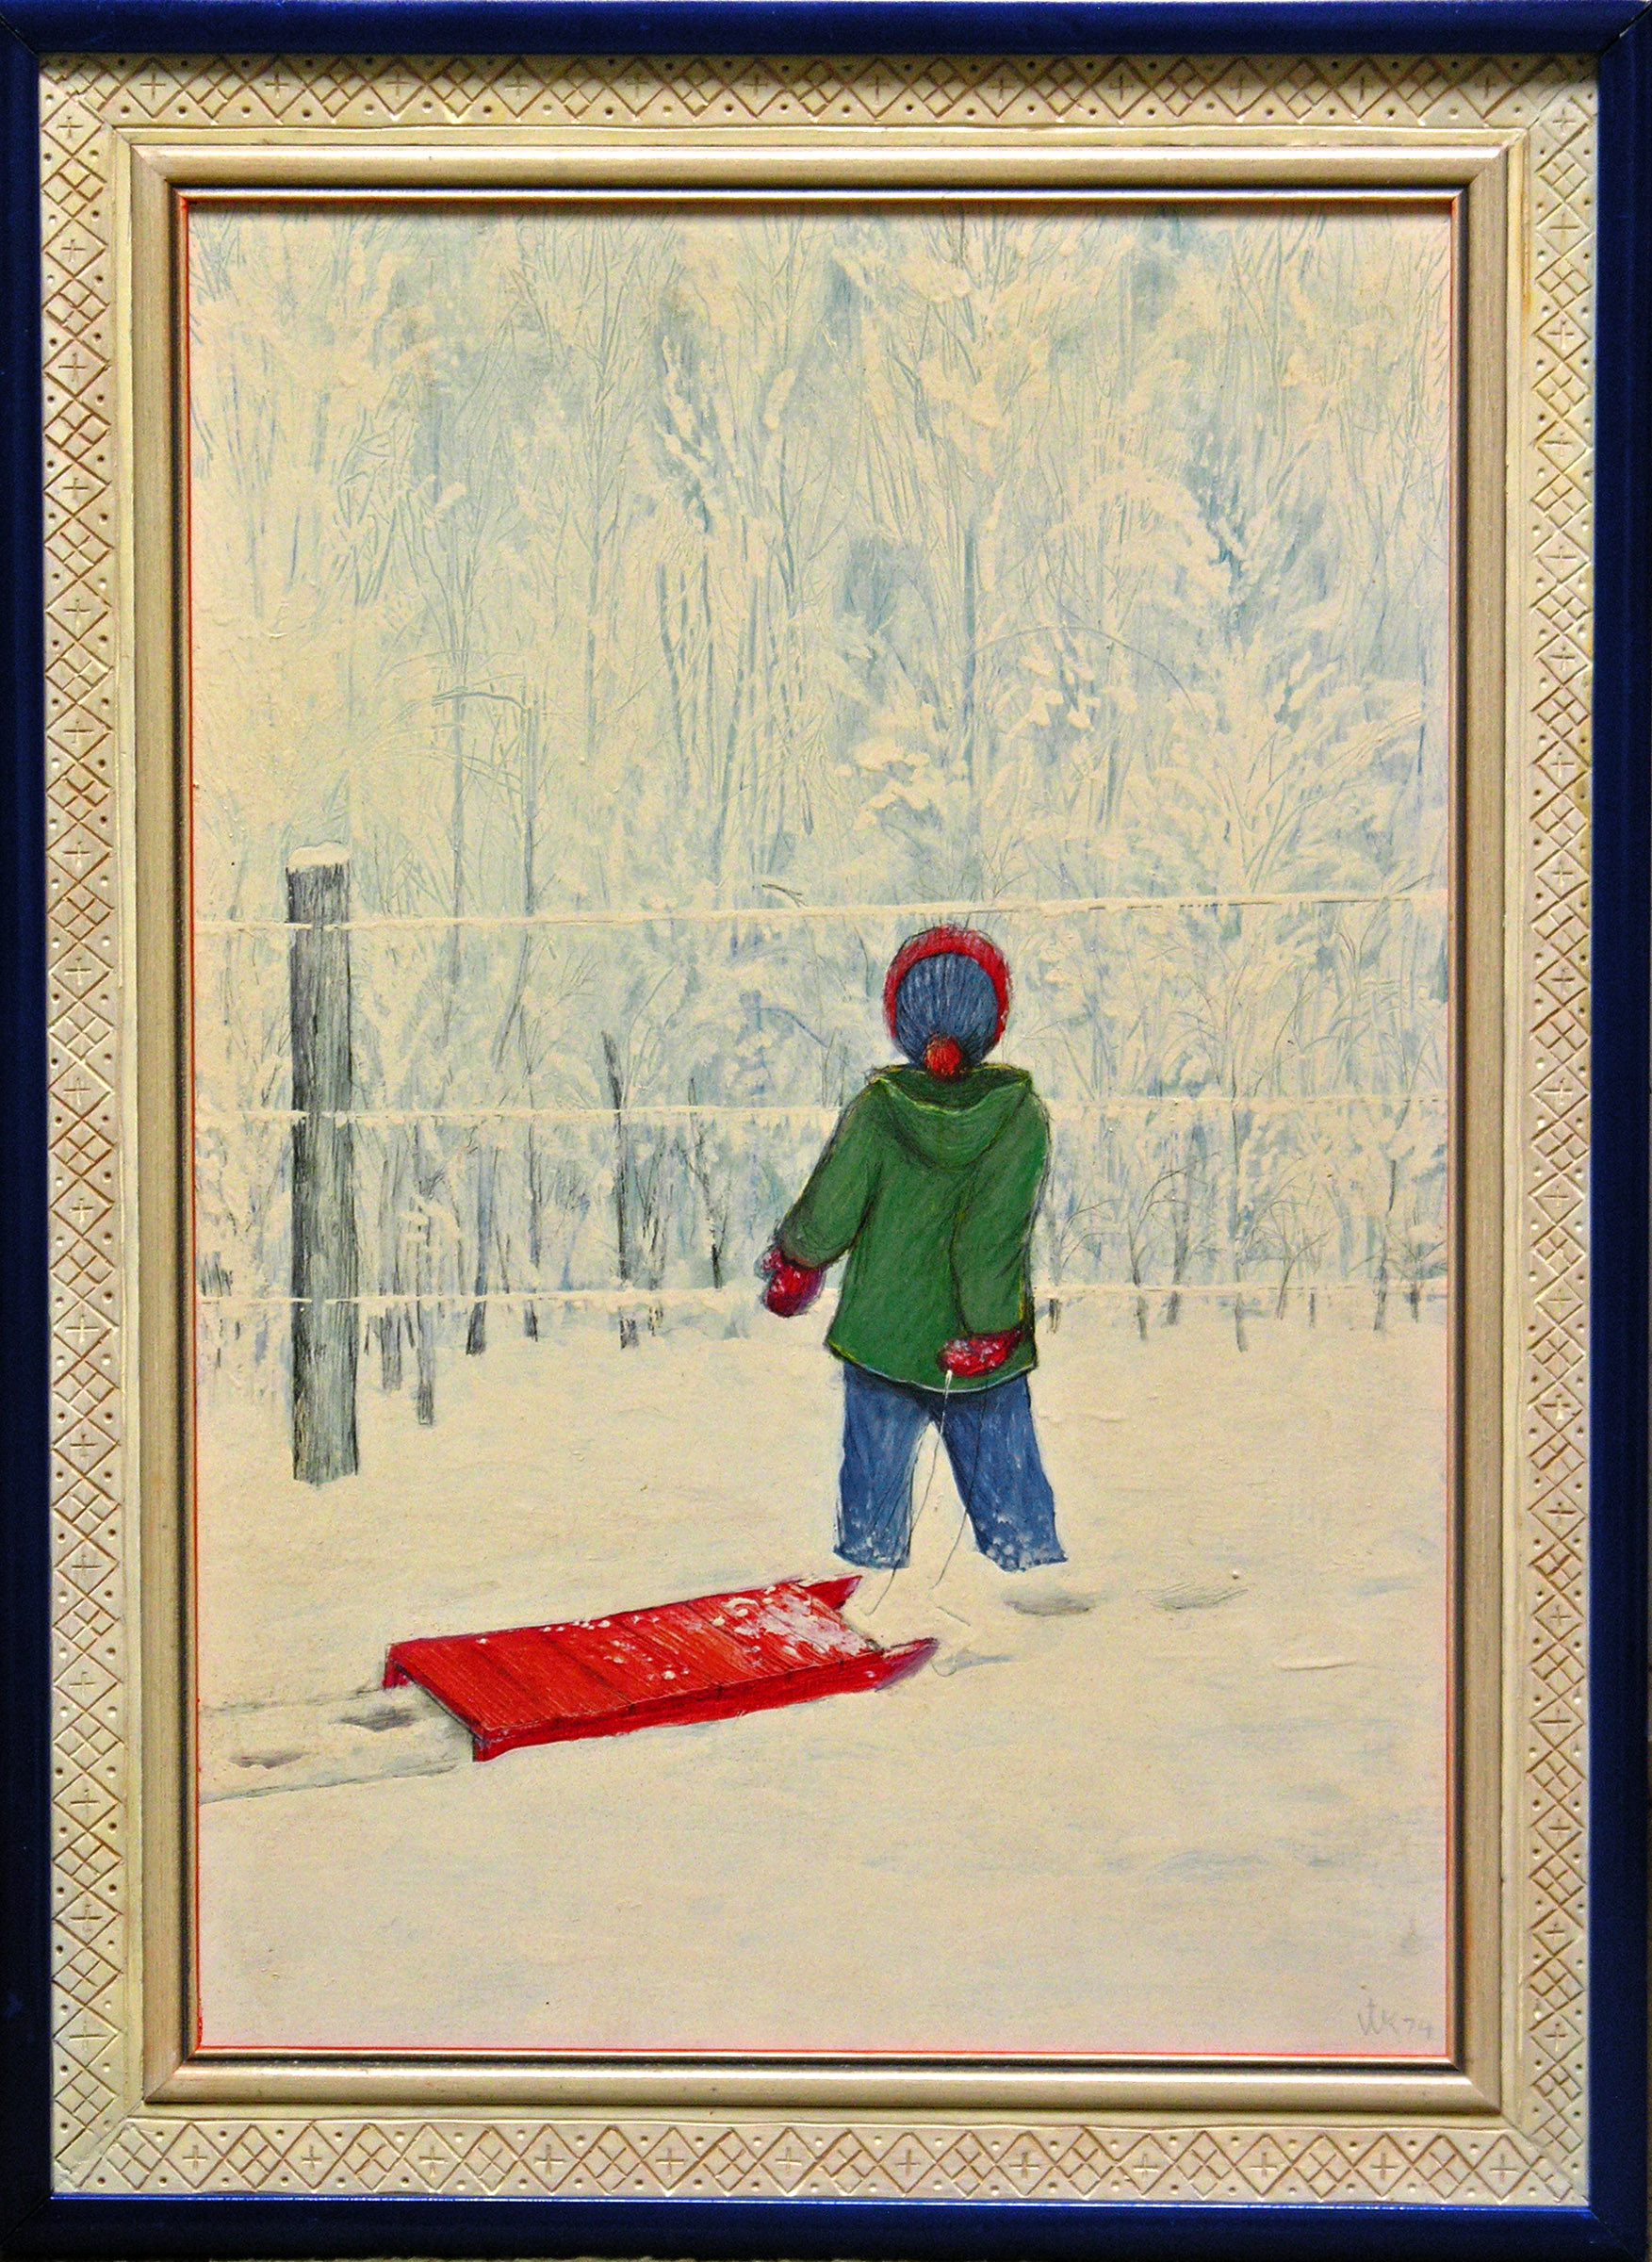 William Kurelek (1927-1977) | Child with red sleigh | oil on masonite 17.3/4 x 12 in.